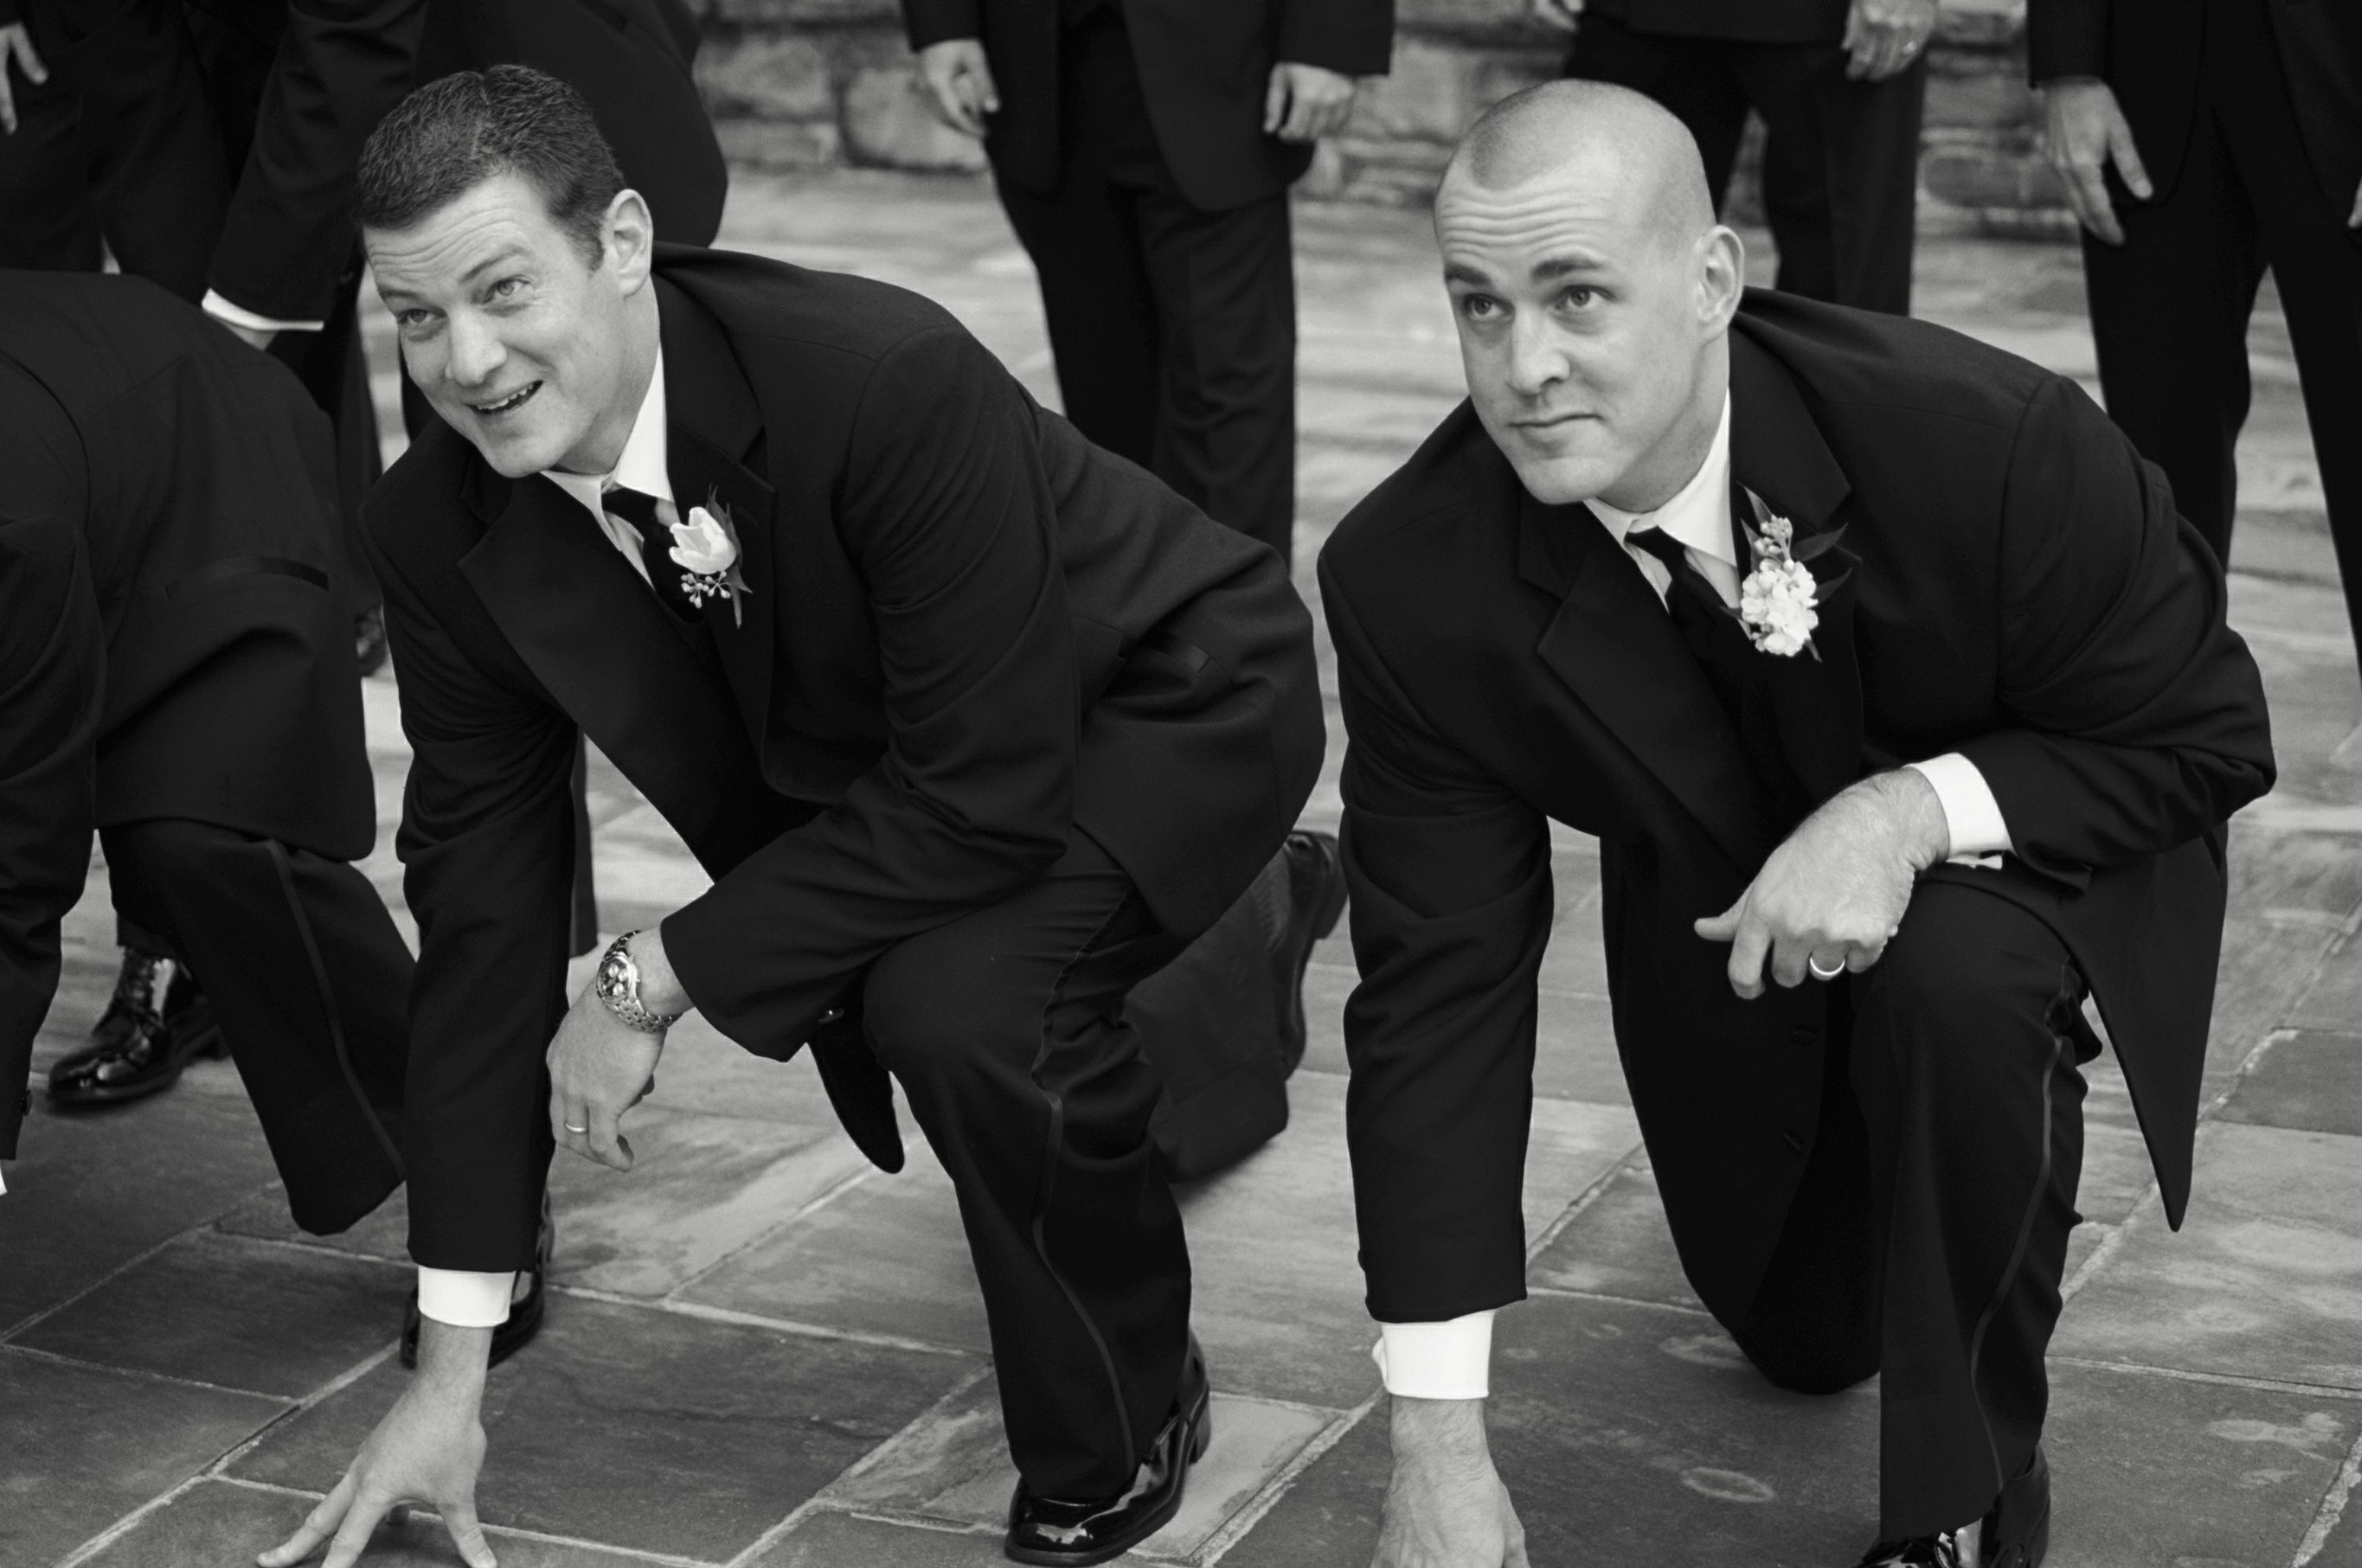 Ah, the early 2000's and the ever-popular football pose for the groomsmen.